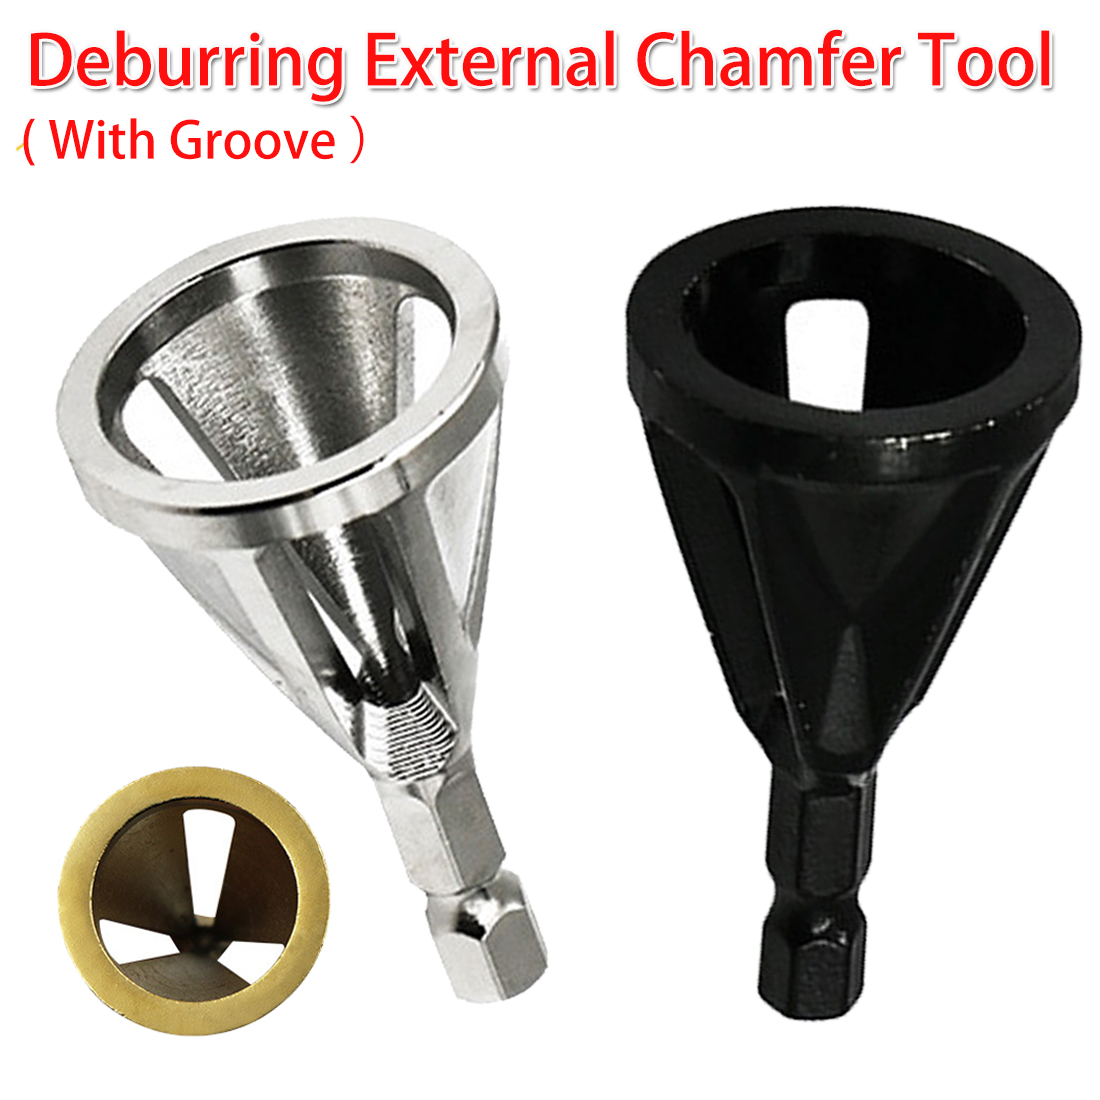 Hardness Drill Bit Stainless Steel Deburring External Chamfer Tool High Strength Remove Burr 1/4 Shank For Copper/ Wood/ Plastic